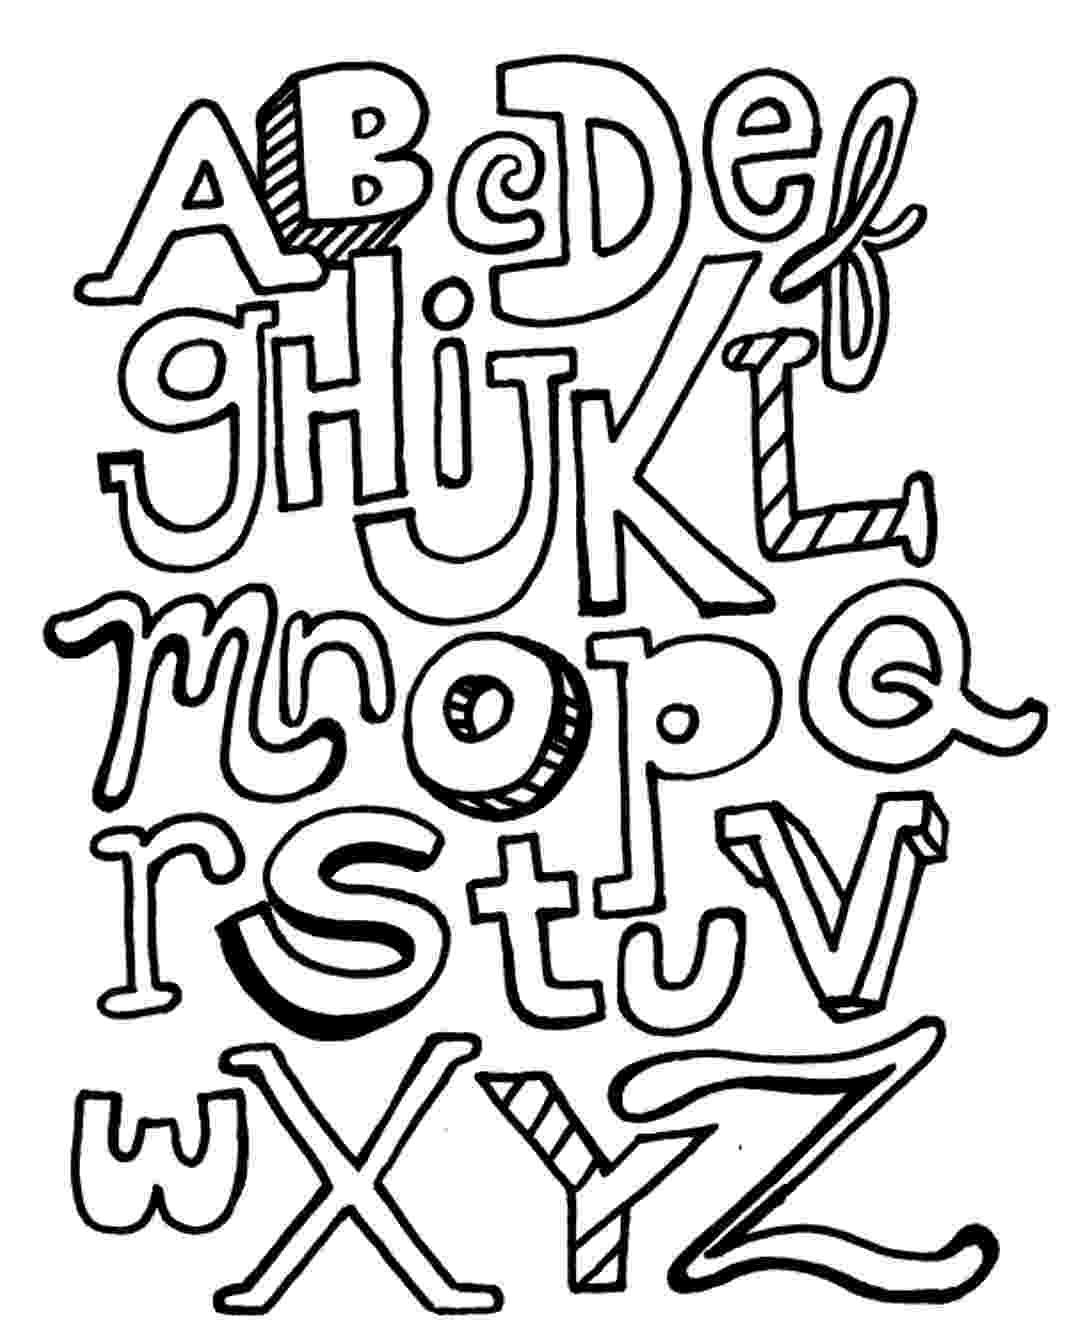 abc coloring book printable free printable alphabet coloring pages for kids best abc printable book coloring